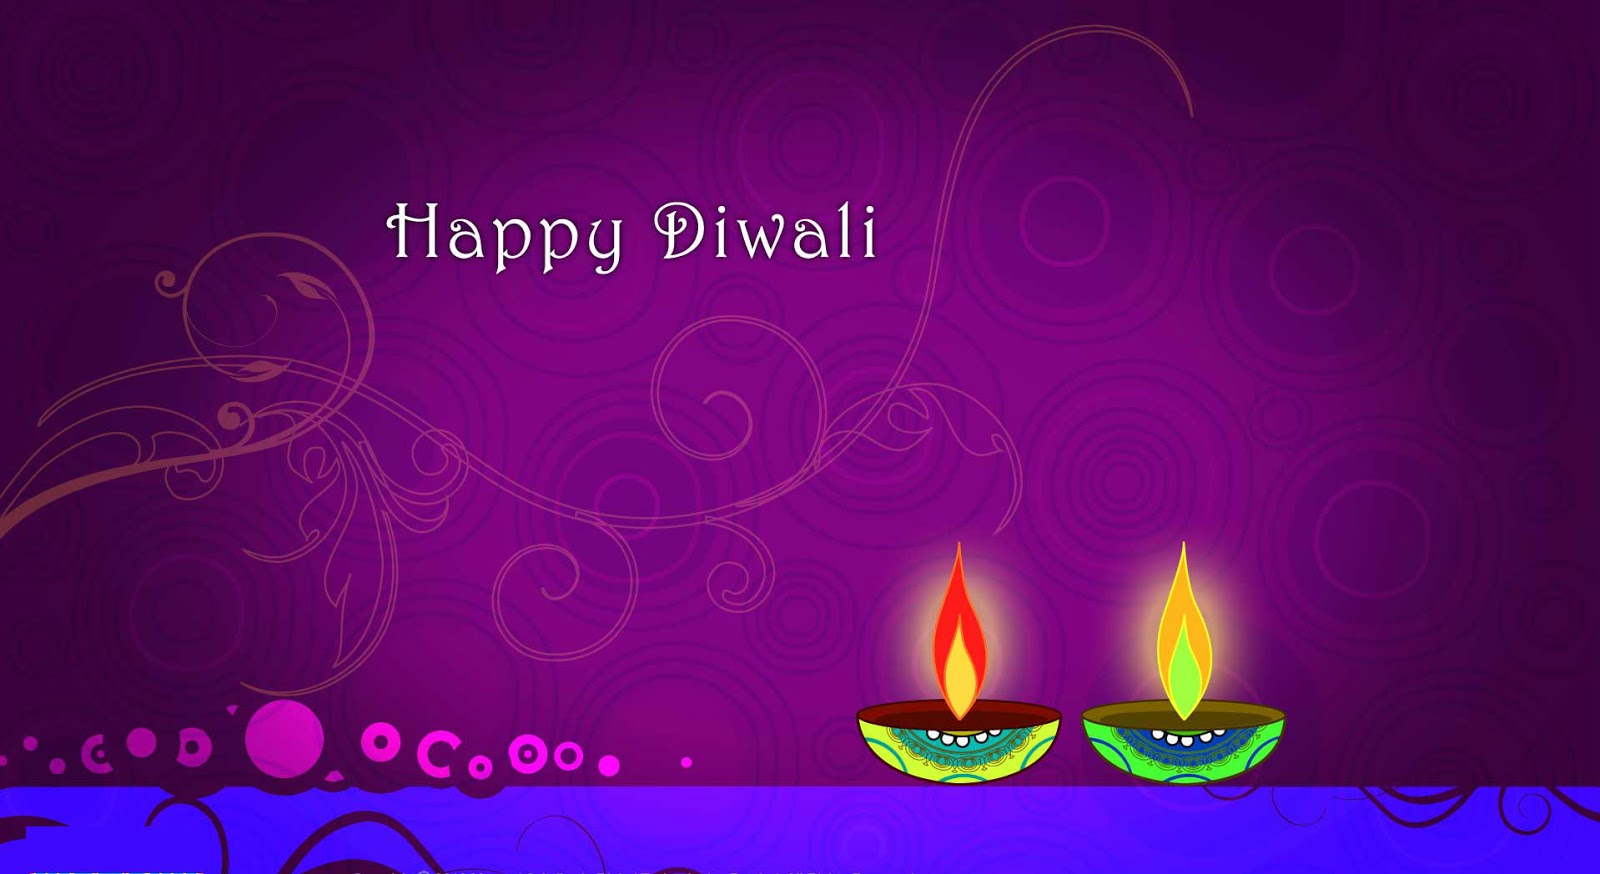 happy diwali images wishes hd happy 234223682357236623542368 deepawali subh diwali durga maa puja photos